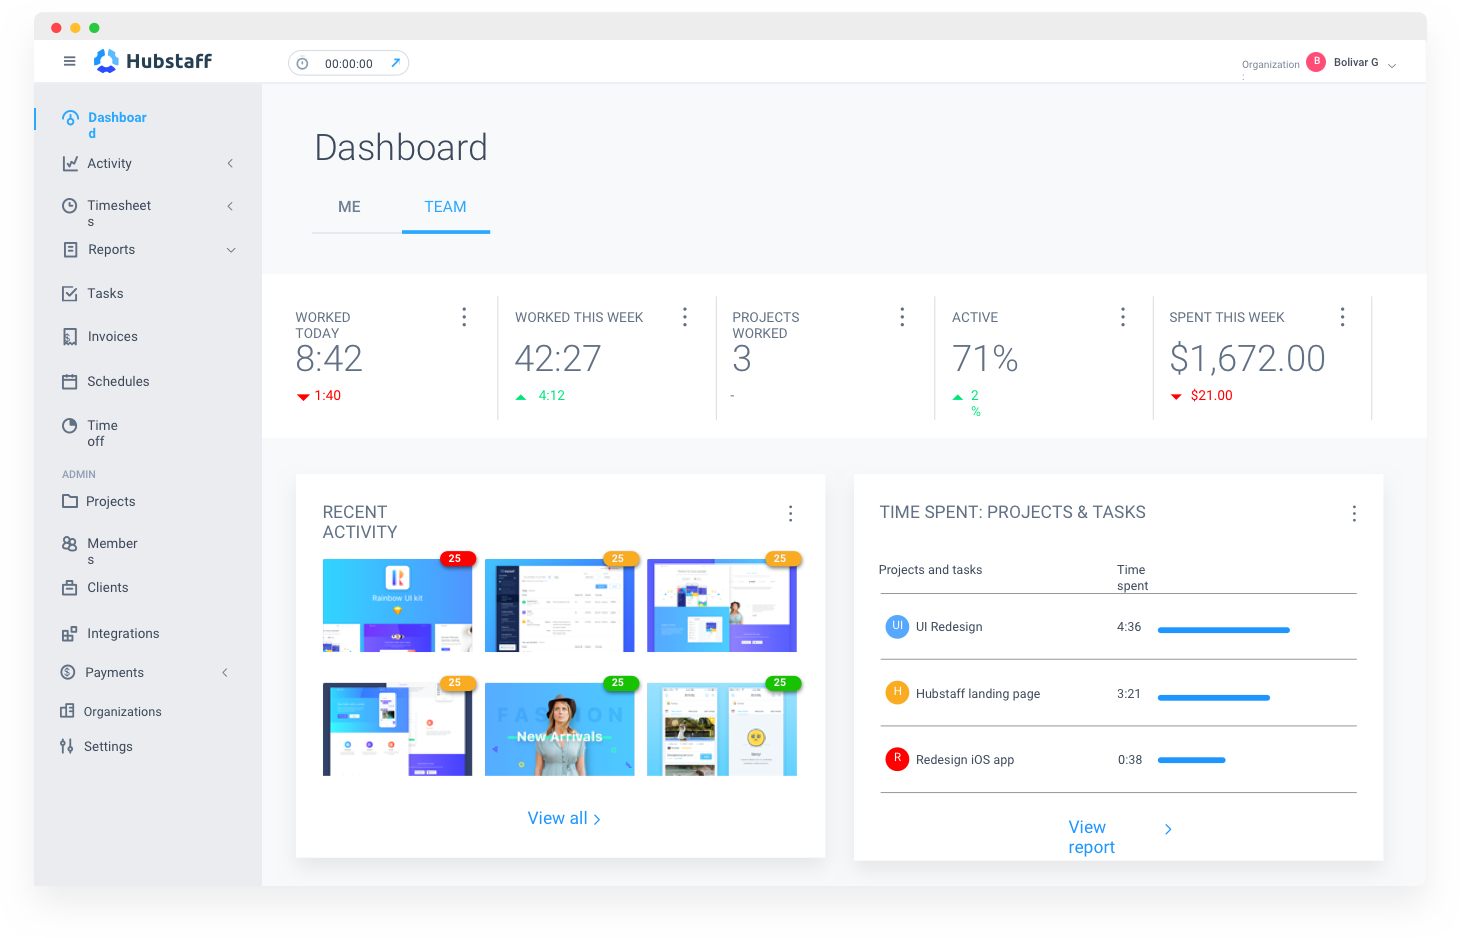 Hubstaff dashboard with employee screenshots